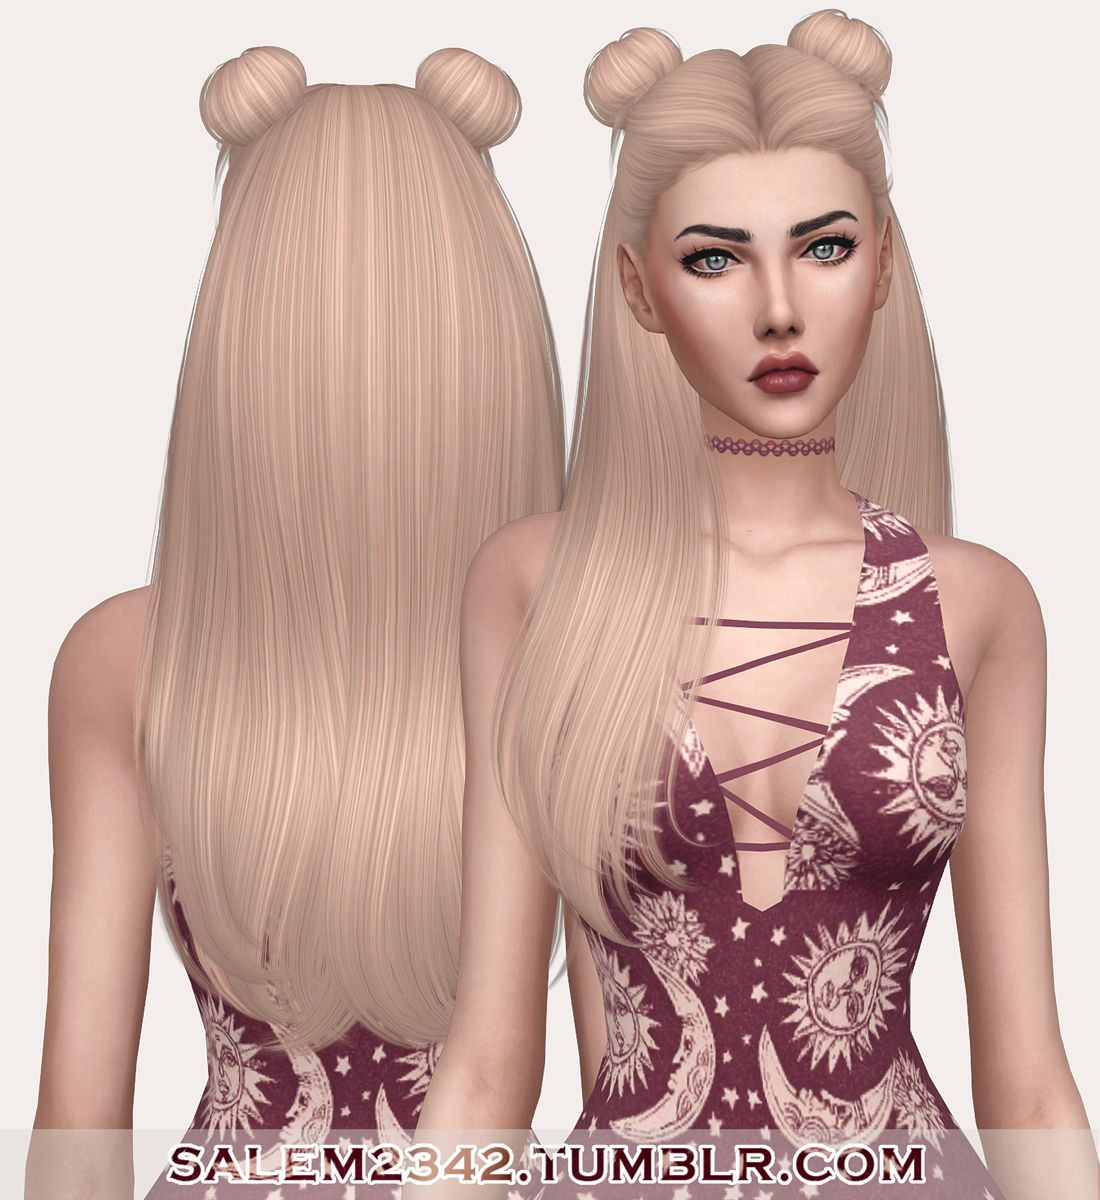 Sims 3&4 — salem2342 Nightcrawler Galaxy Hair Retexture